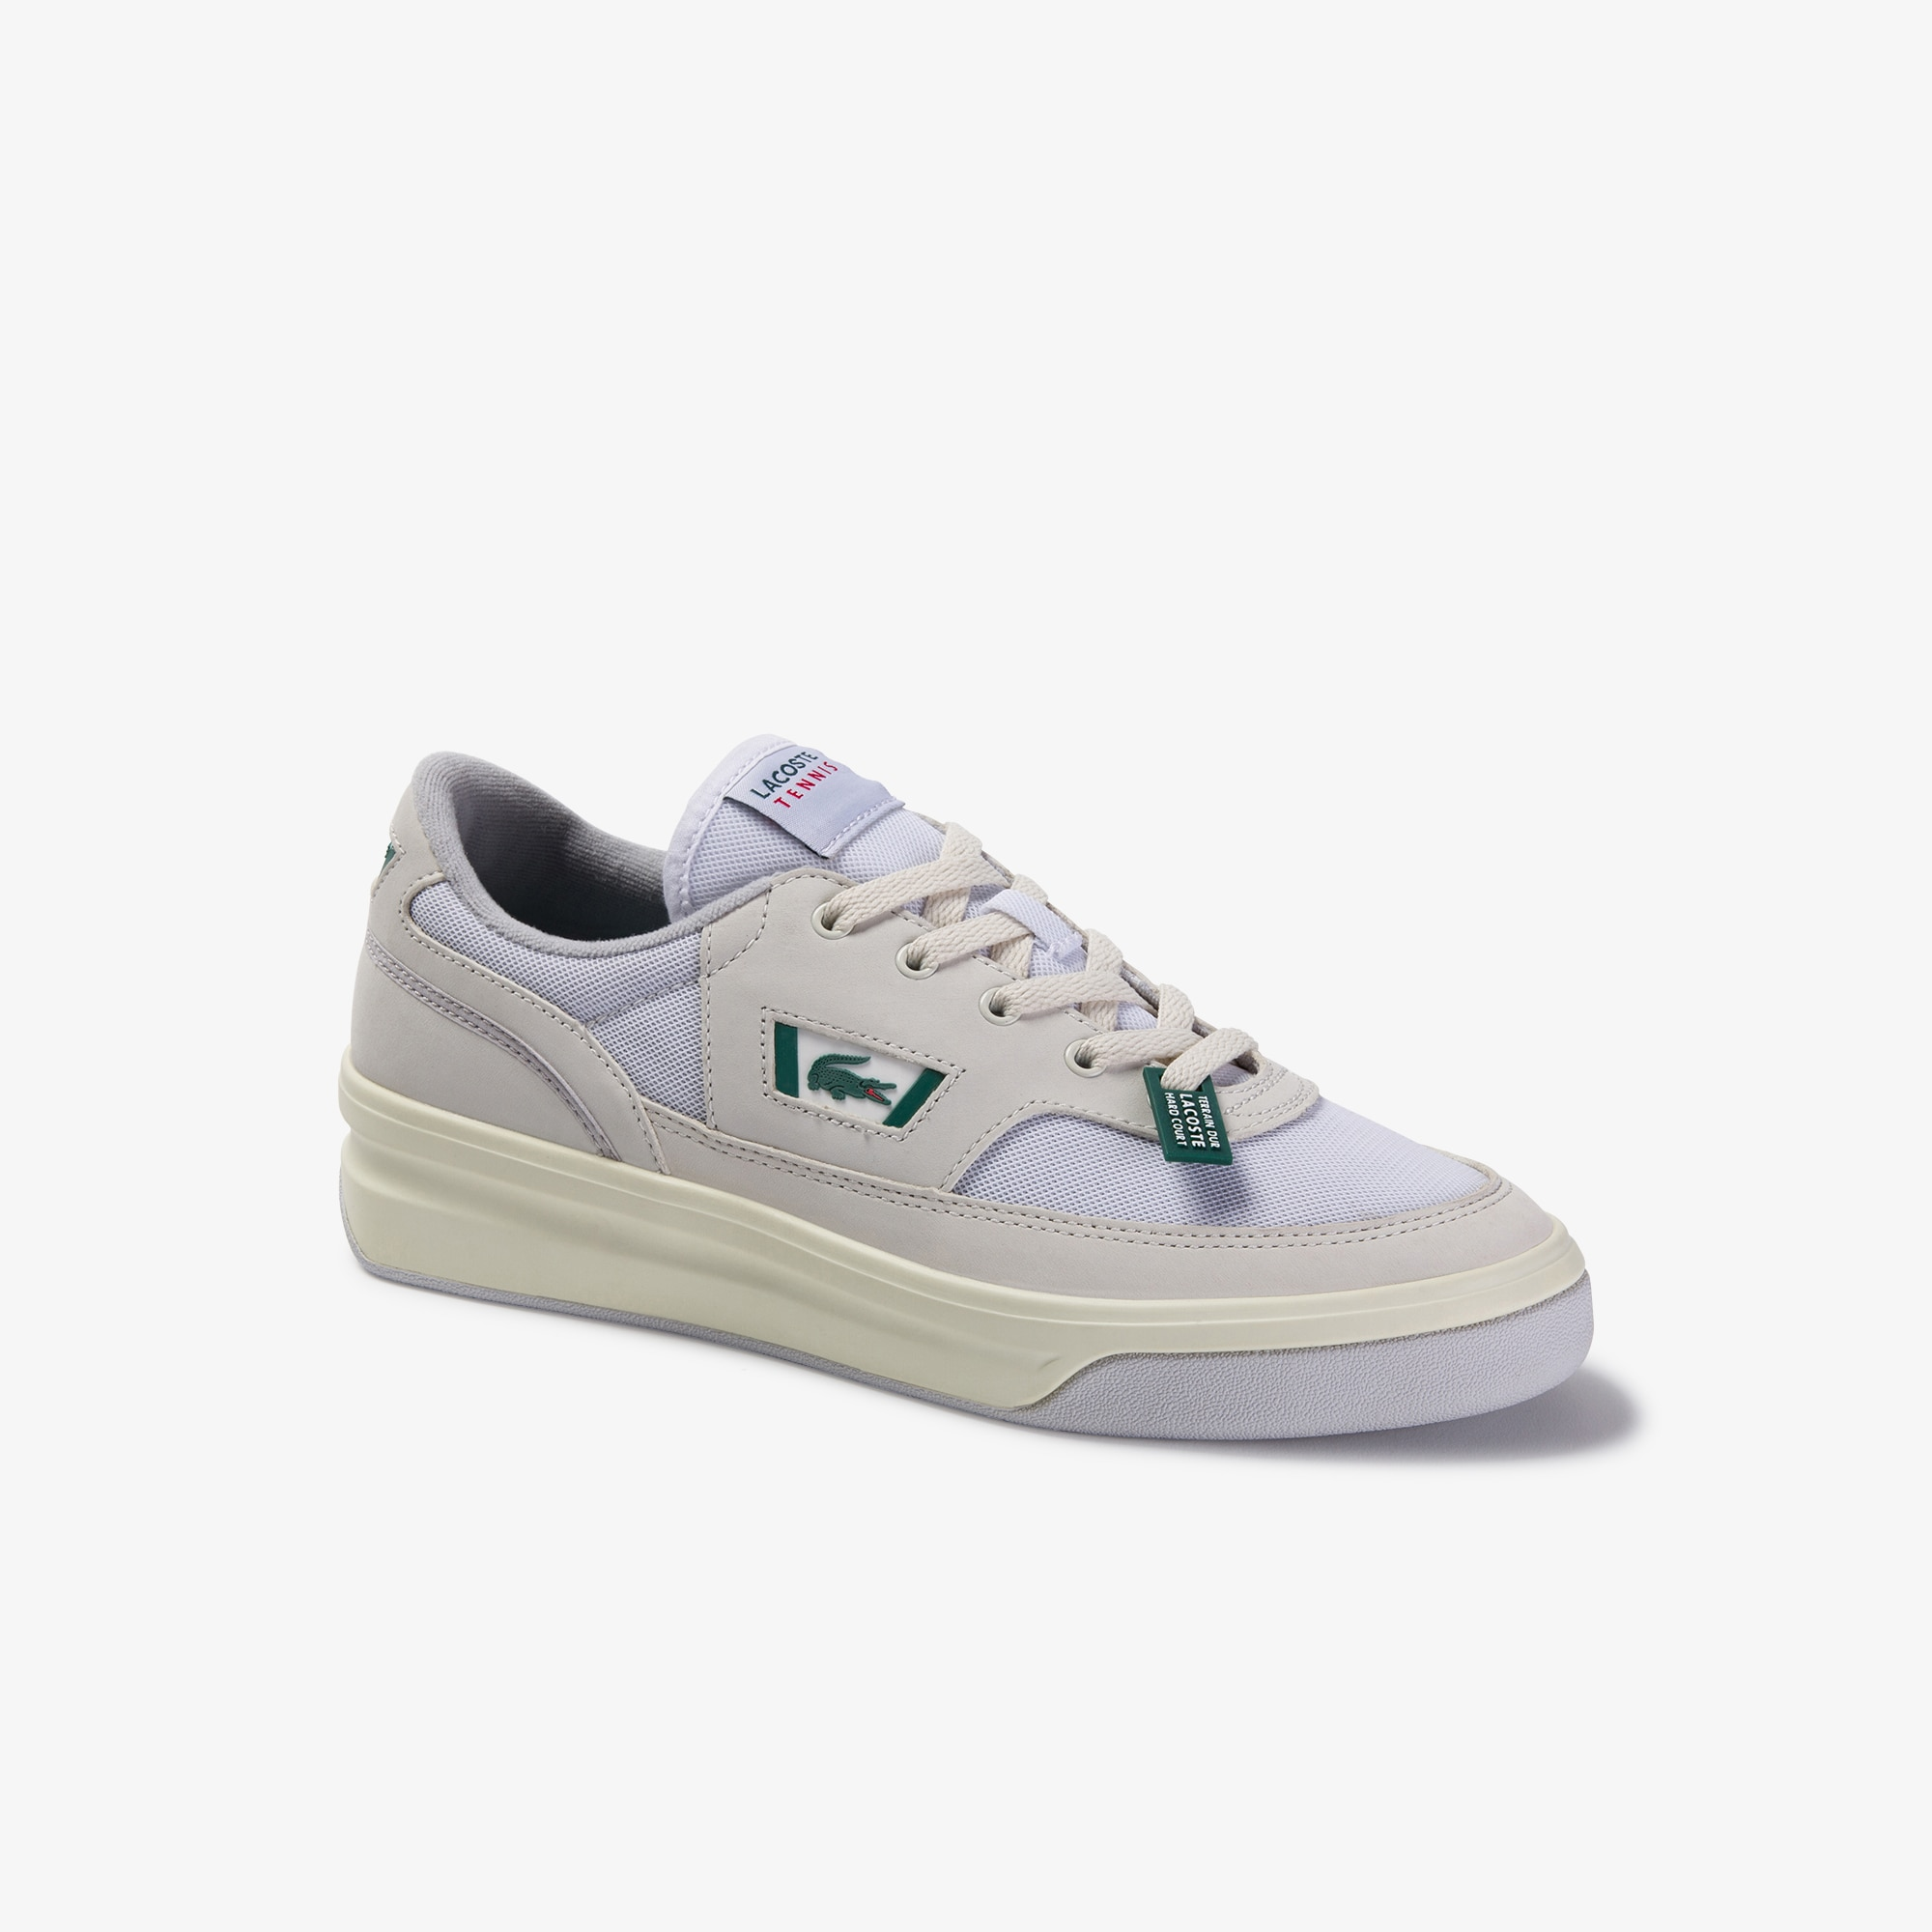 latest lacoste sneakers - 56% OFF